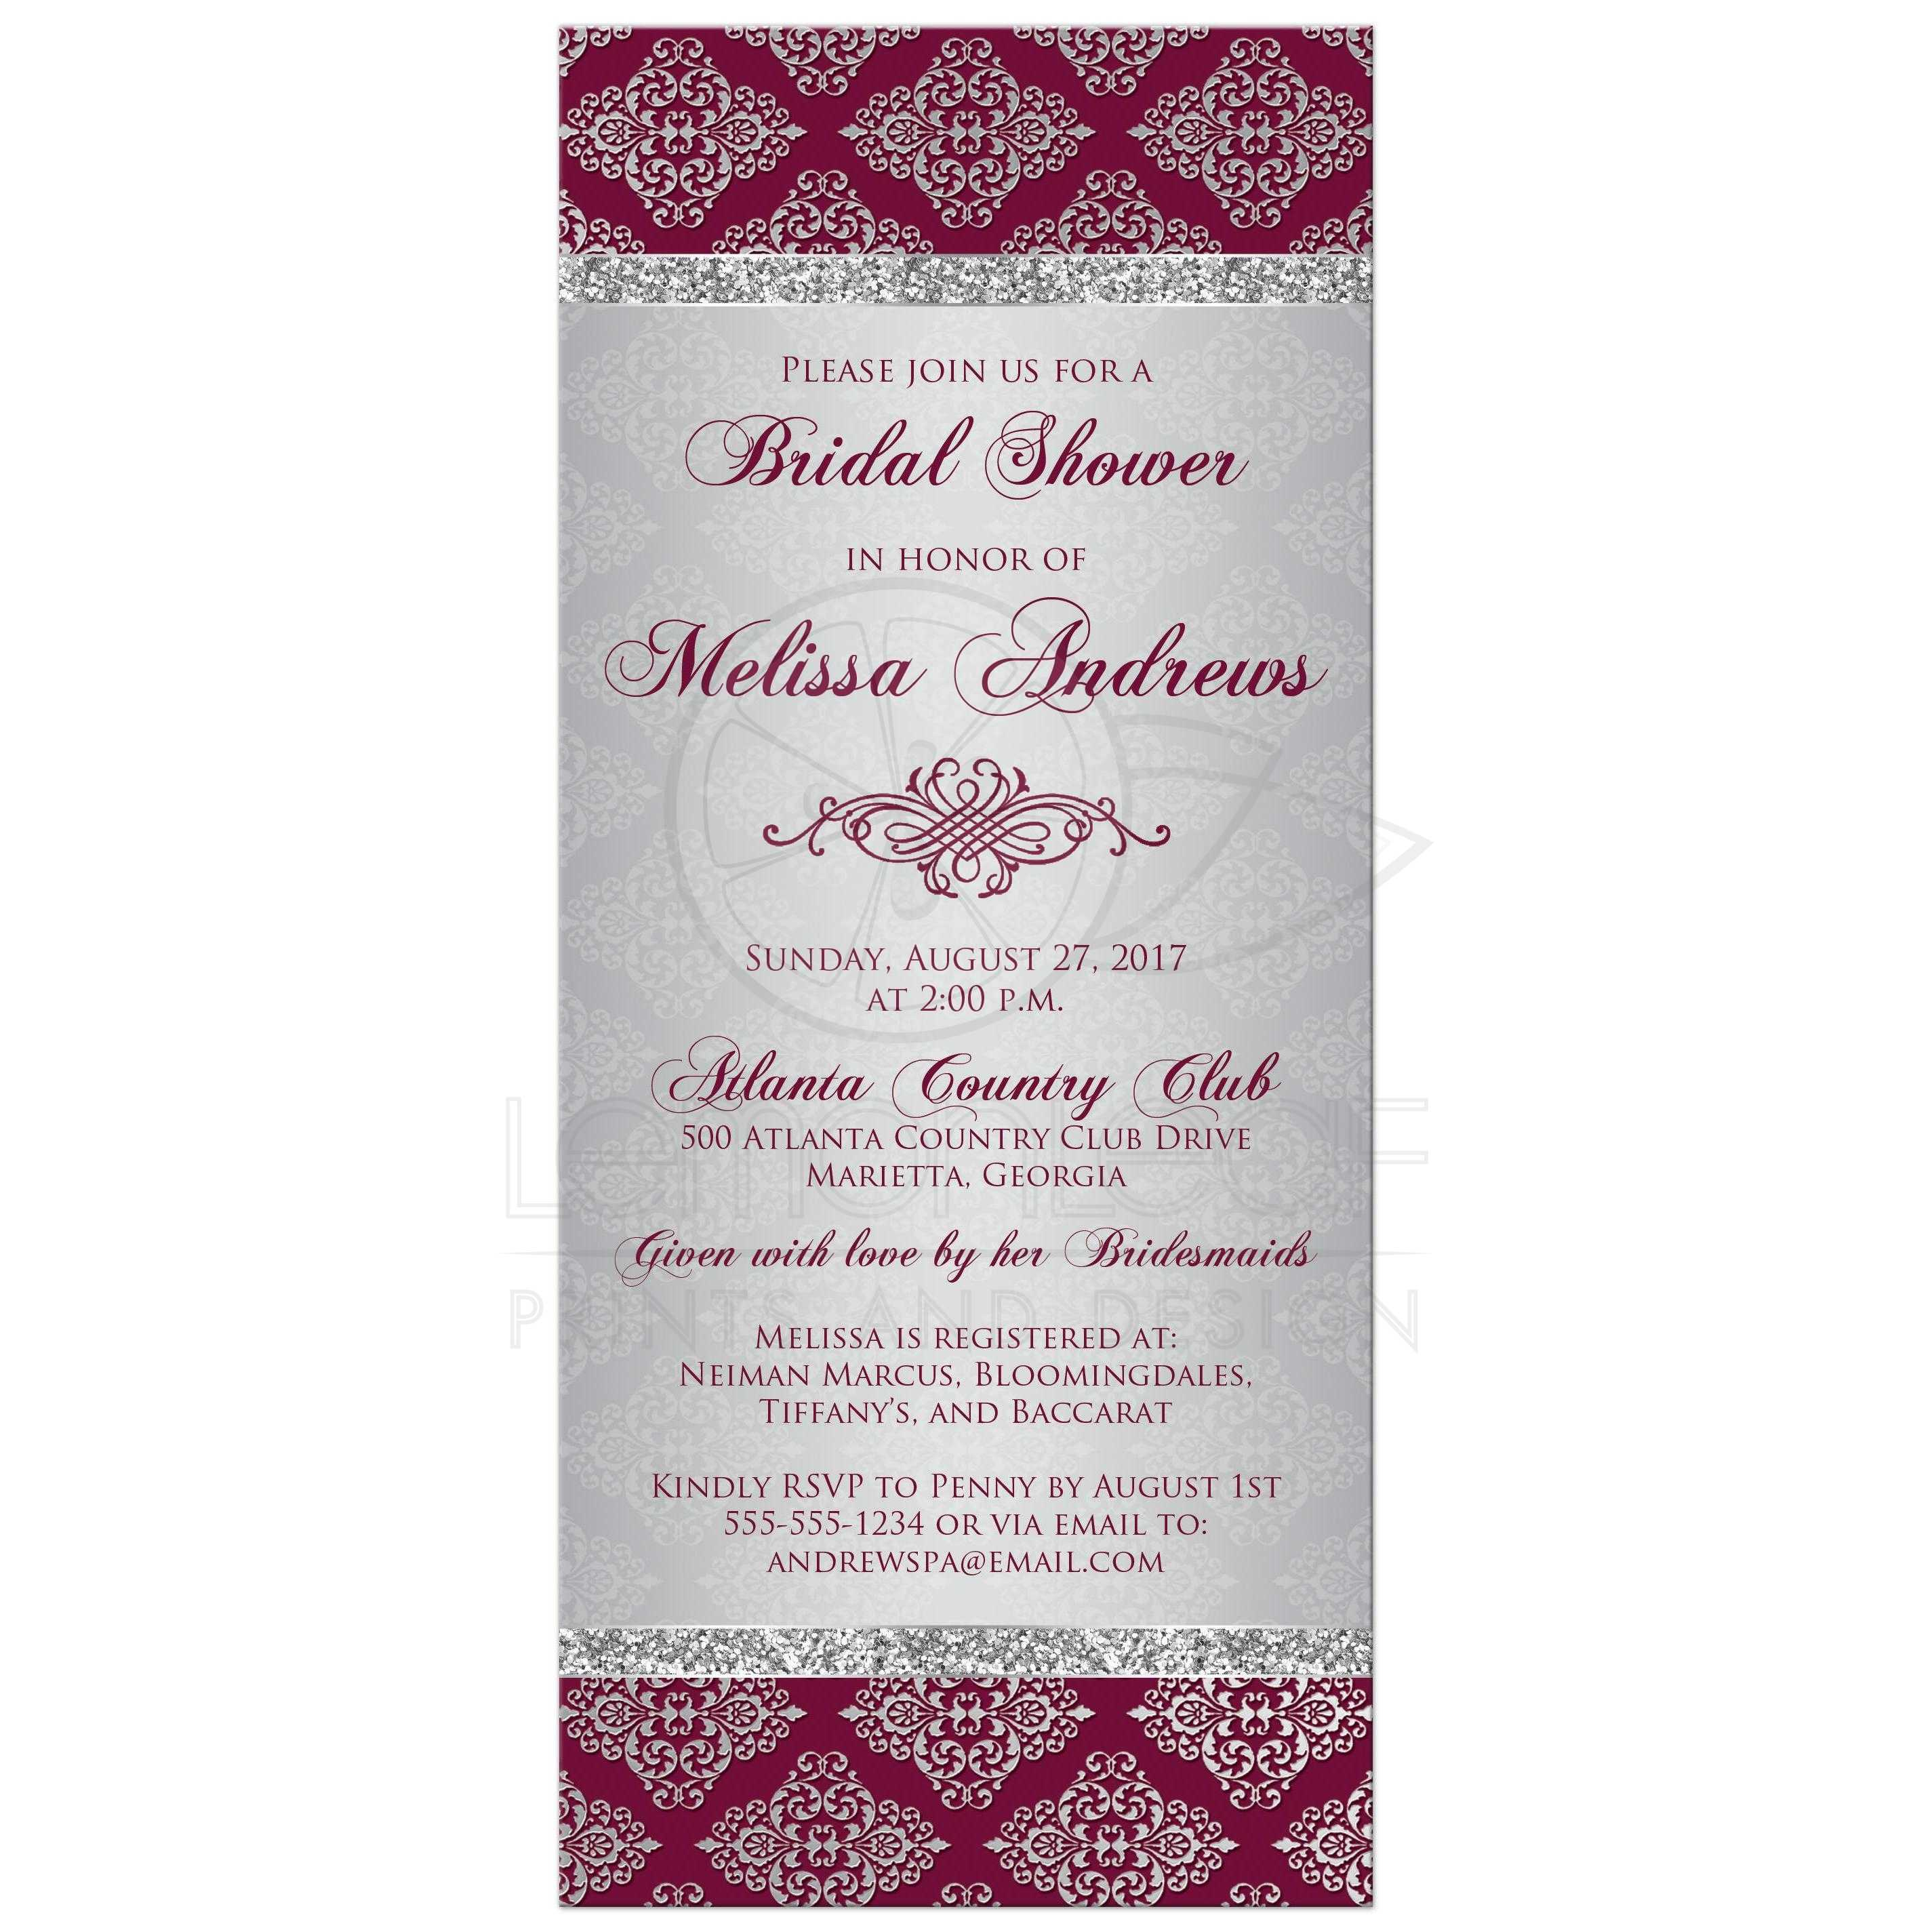 burgundy and silver gray grey damask pattern bridal shower invitation with silver glitter and ornate